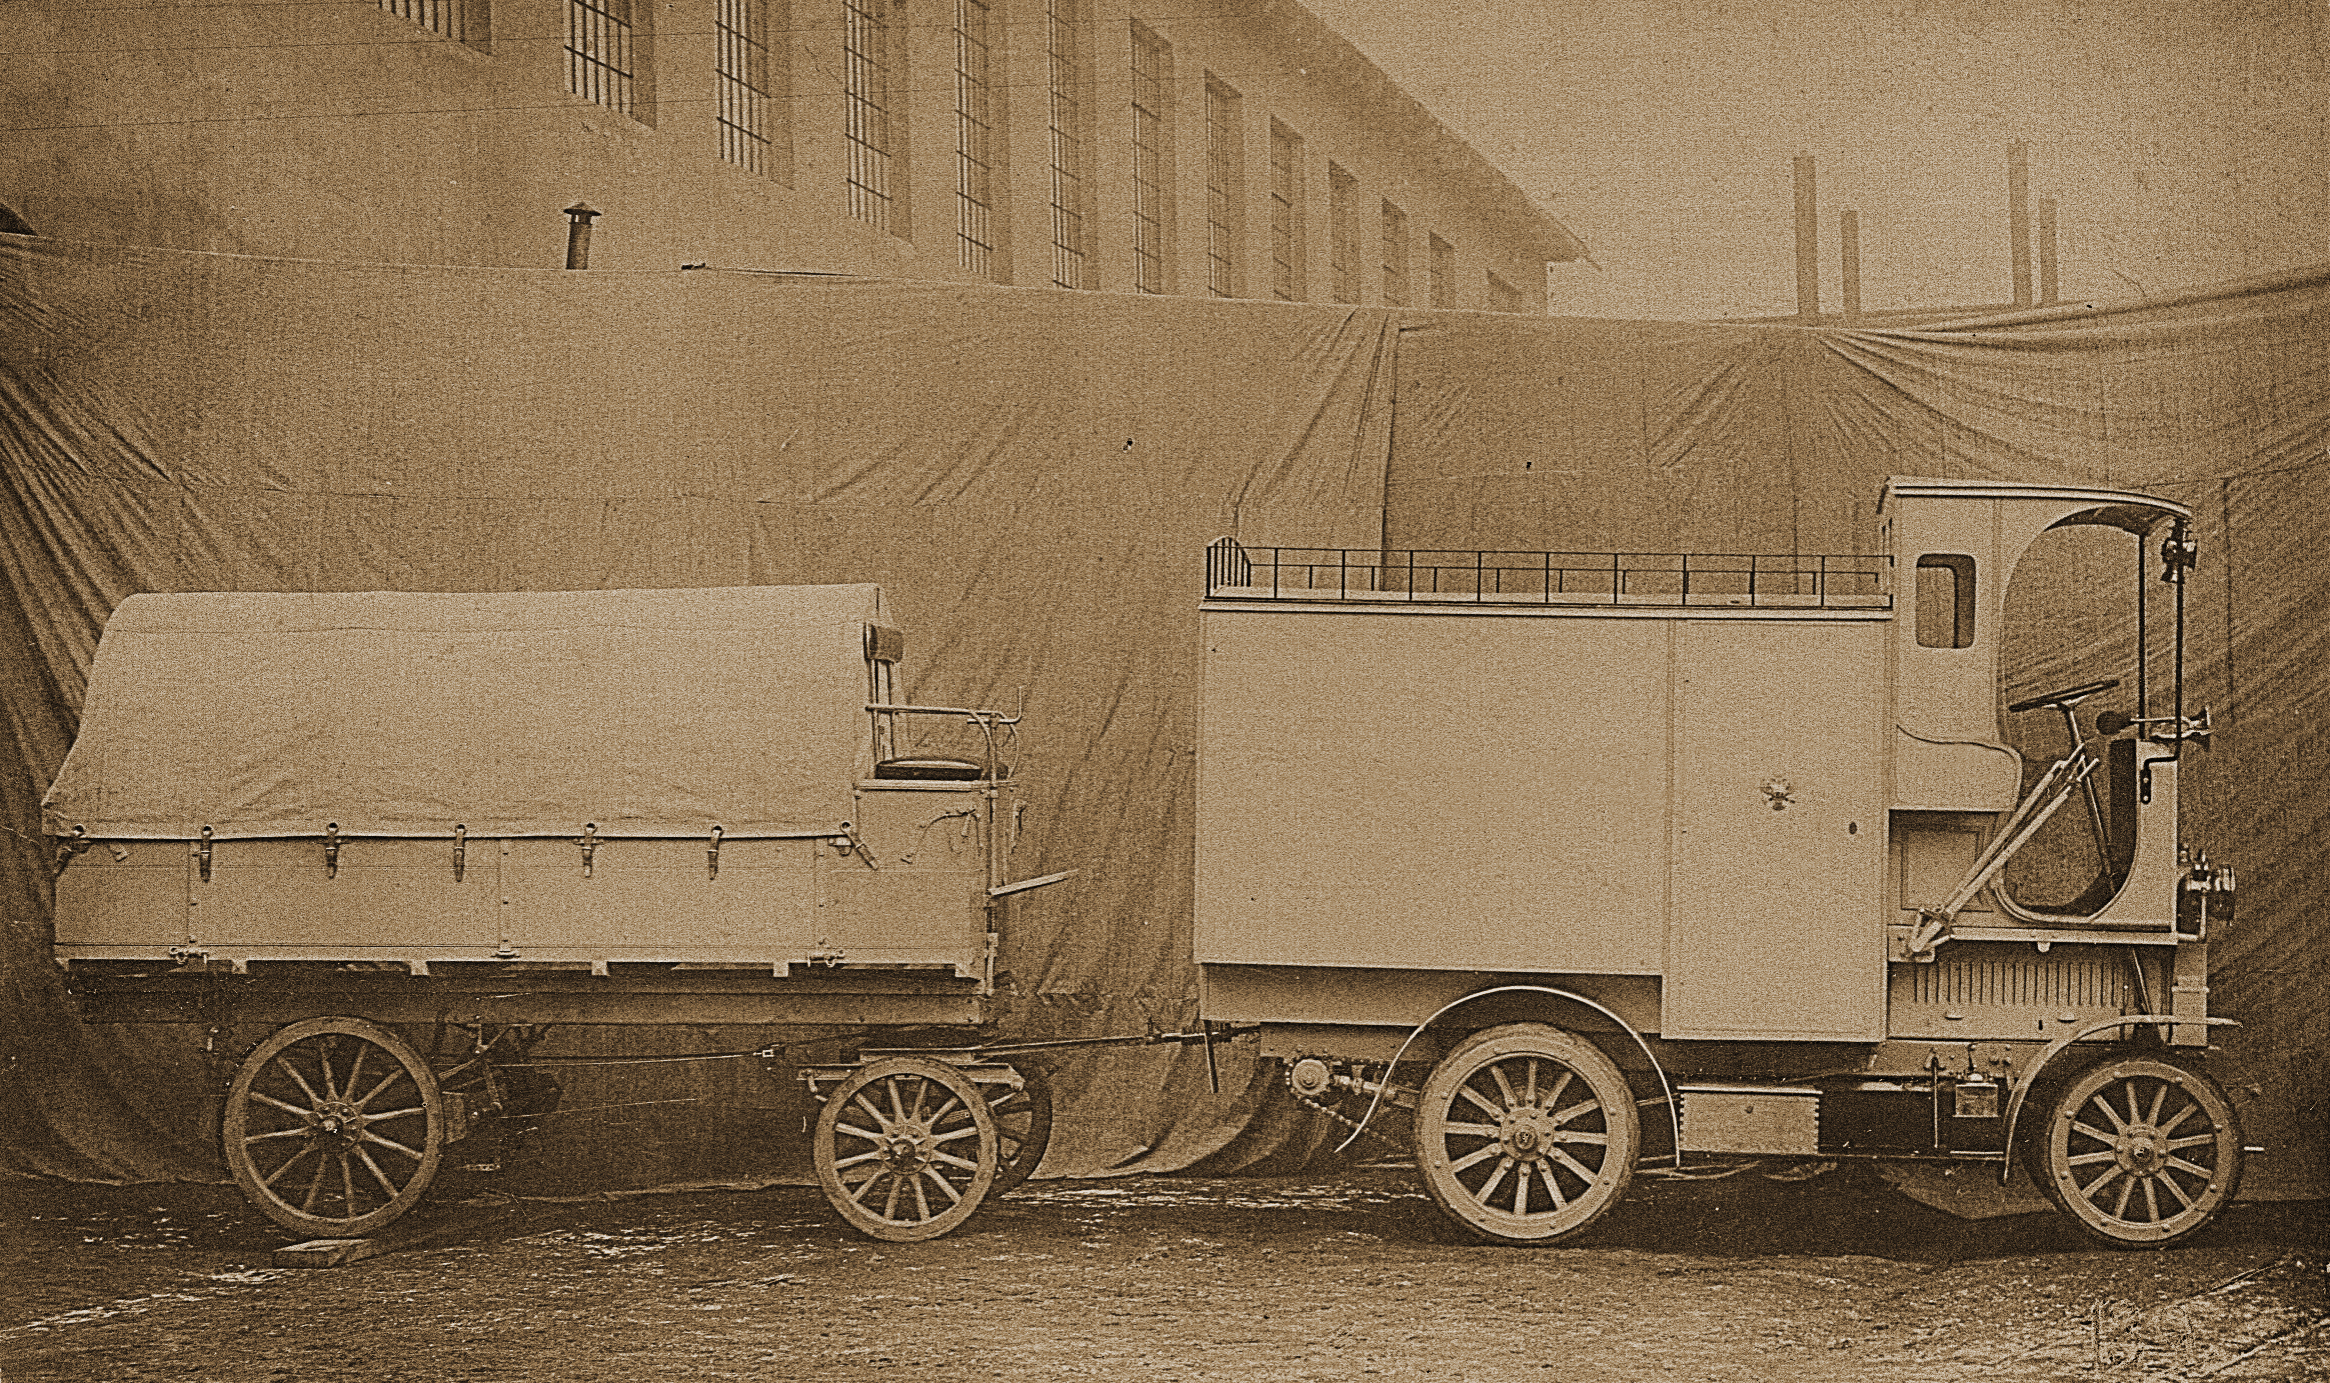 Lesser-known models from SKODA AUTO's 125-year history: The 'Černá Hora-Montenegro' buses and vans - Image 4